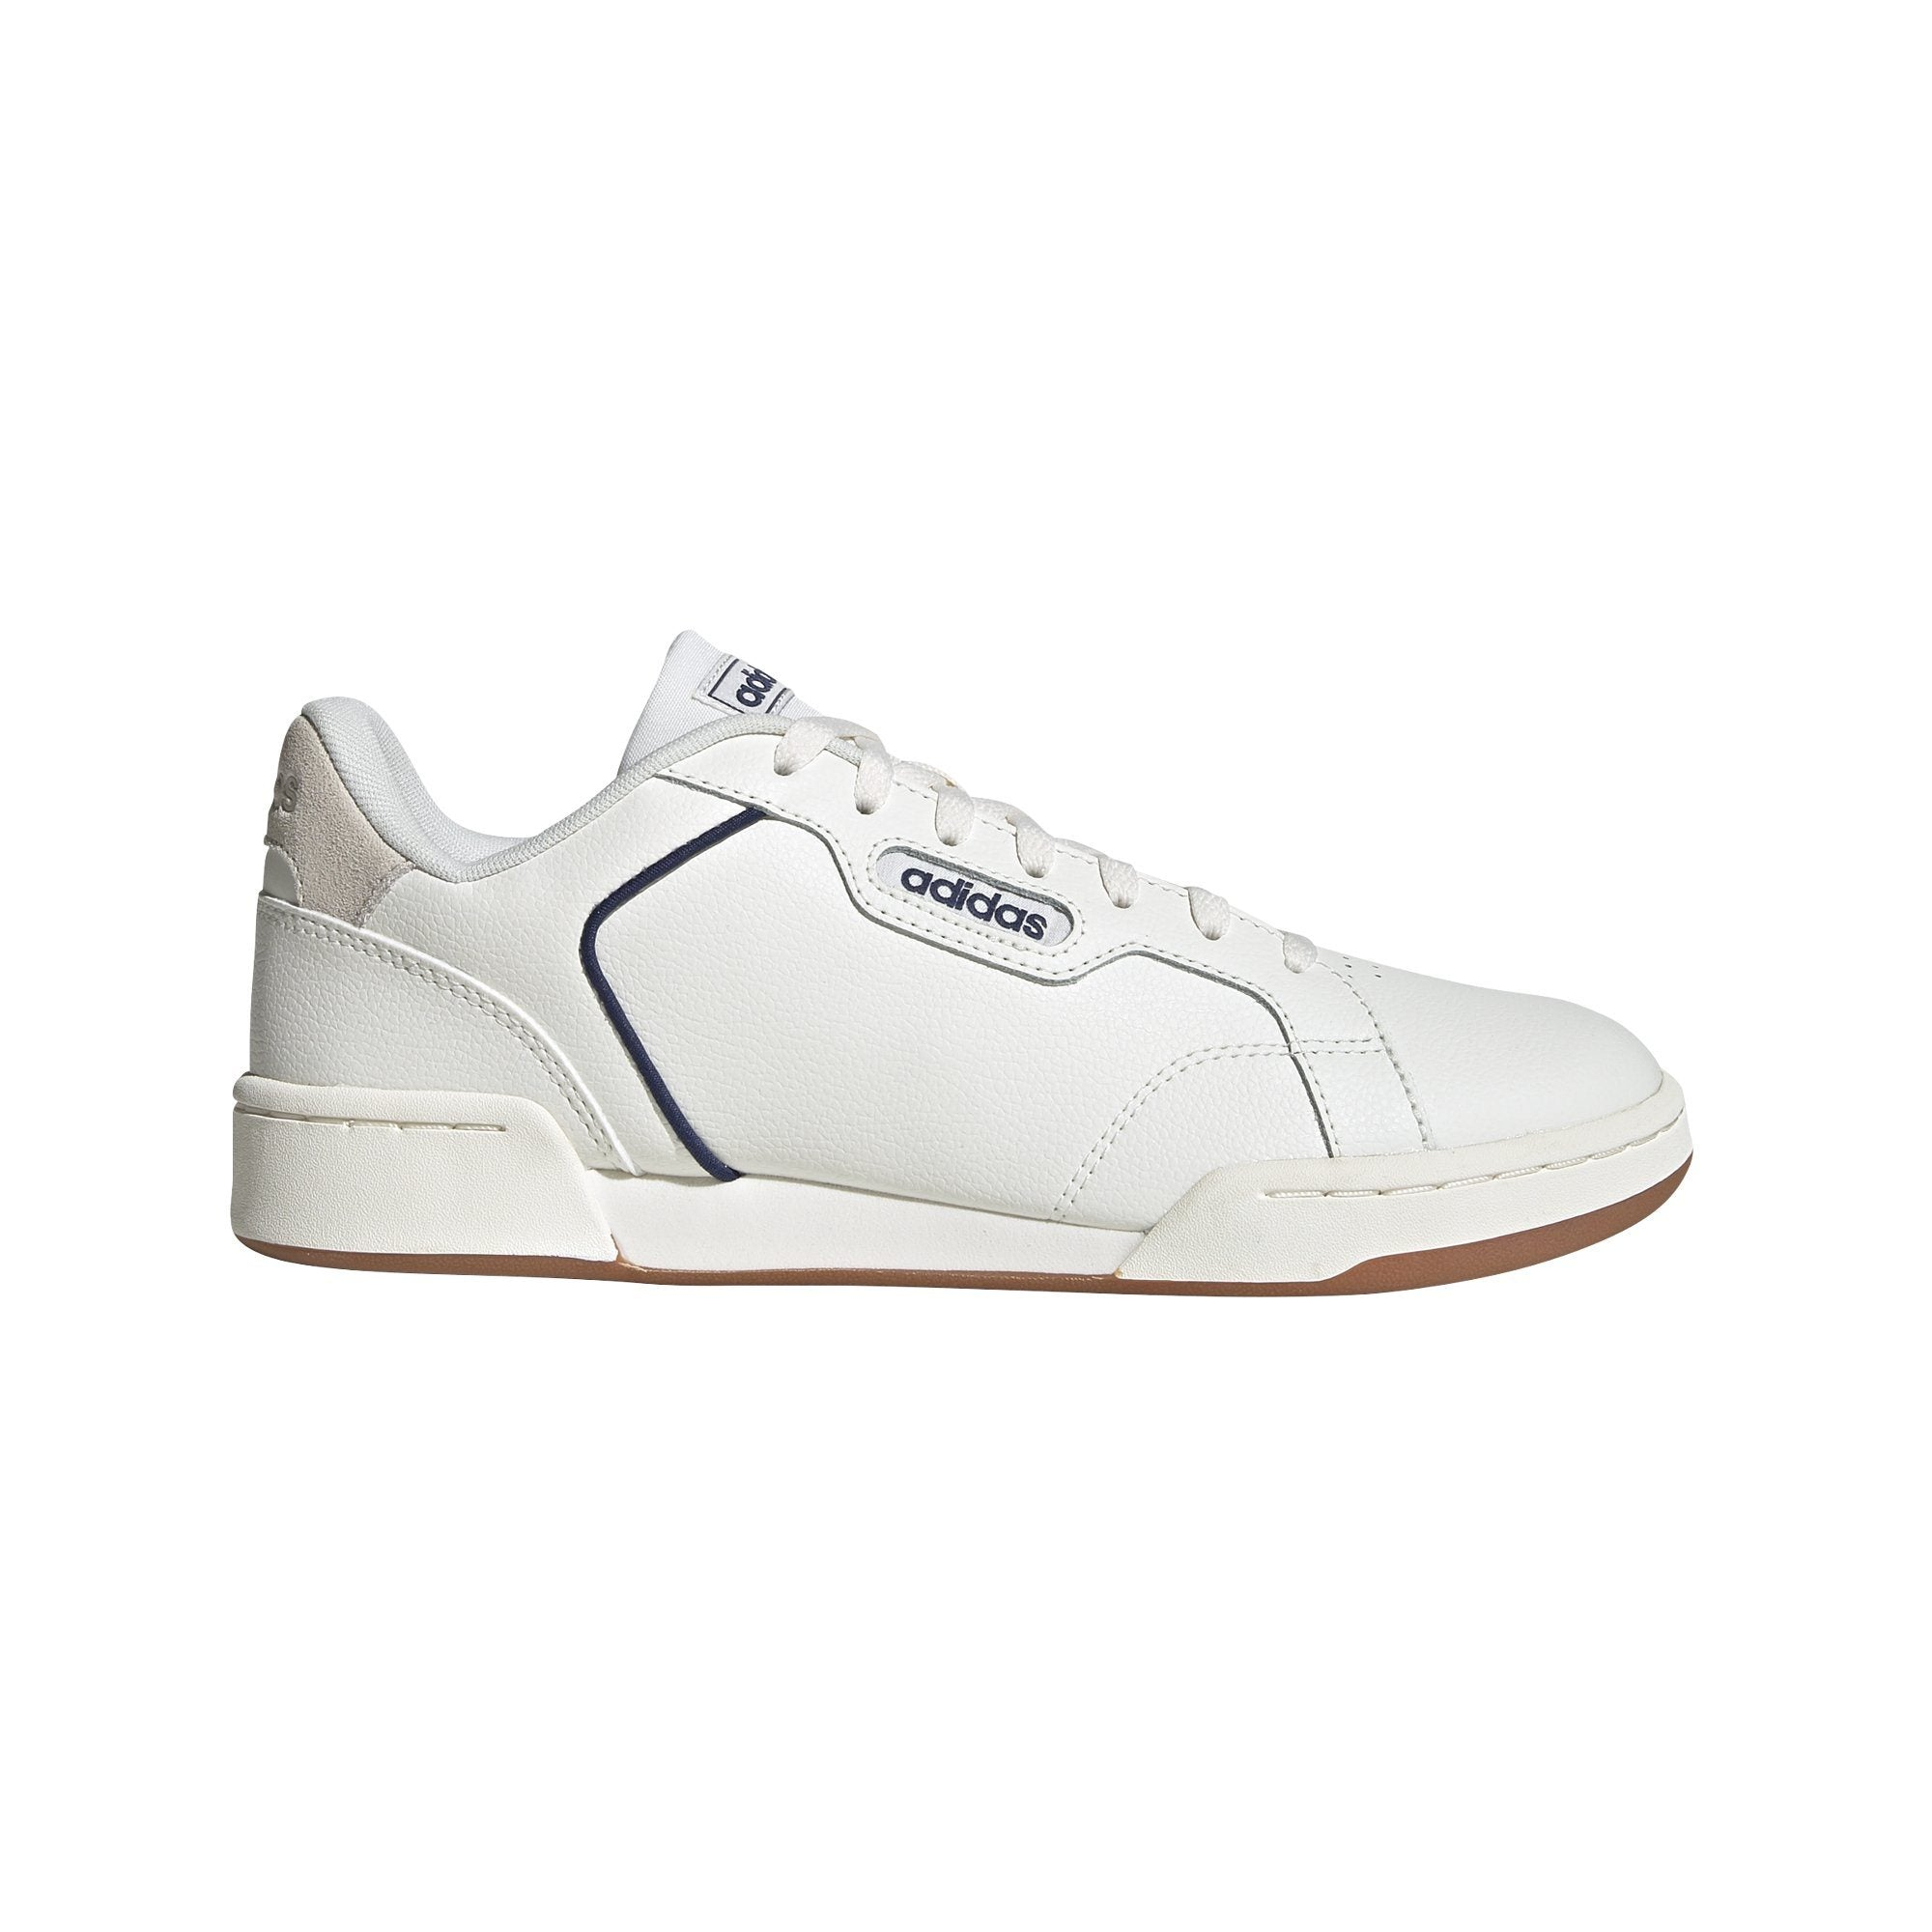 Adidas Mens Roguera Shoes - Cloud White/Cloud White/Tech Indigo SP-Footwear-Mens Adidas